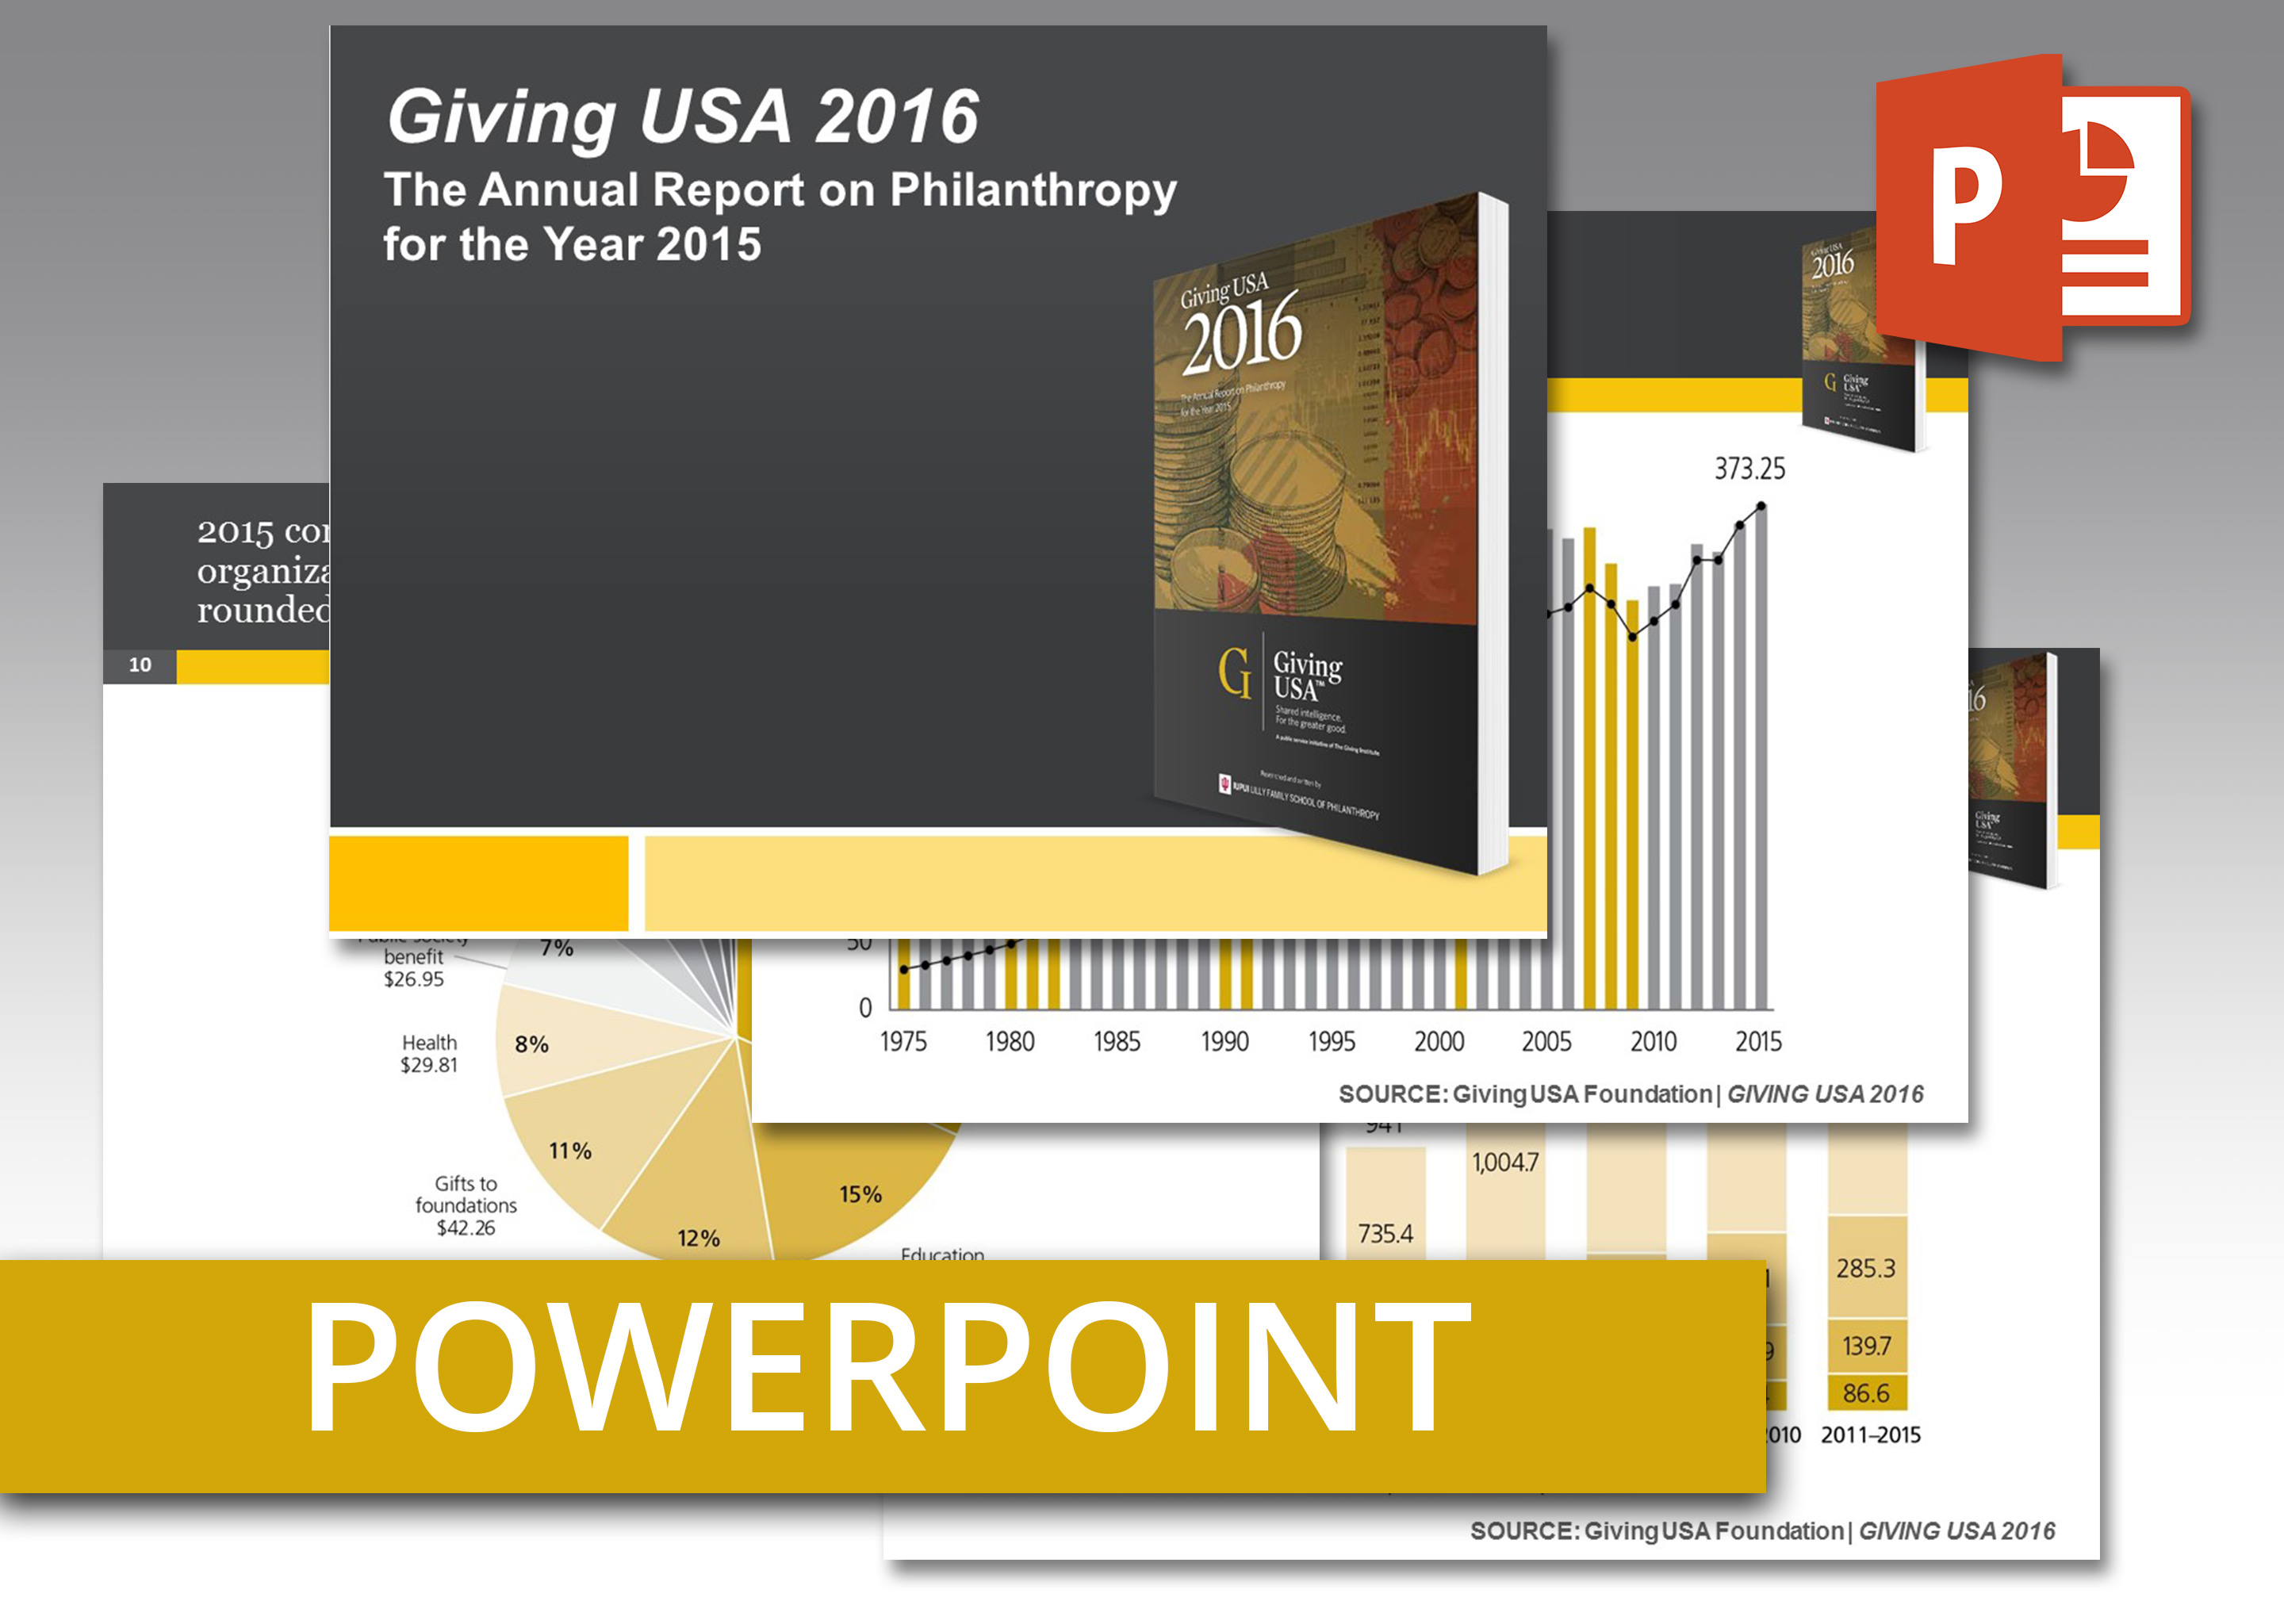 Usdgus  Outstanding Giving Usa  Powerpoint An Easytouse Presentation Of Report  With Inspiring Giving Usa  Powerpoint An Easytouse Presentation Of Report Findings Including Talking Points With Endearing Blue Force Tracker Powerpoint Also How To Save High Resolution Images From Powerpoint In Addition Introduction Powerpoint And Powerpoint Glossary As Well As How Do I Add A Video To Powerpoint Additionally Powerpoint Buttons From Givingusaorg With Usdgus  Inspiring Giving Usa  Powerpoint An Easytouse Presentation Of Report  With Endearing Giving Usa  Powerpoint An Easytouse Presentation Of Report Findings Including Talking Points And Outstanding Blue Force Tracker Powerpoint Also How To Save High Resolution Images From Powerpoint In Addition Introduction Powerpoint From Givingusaorg